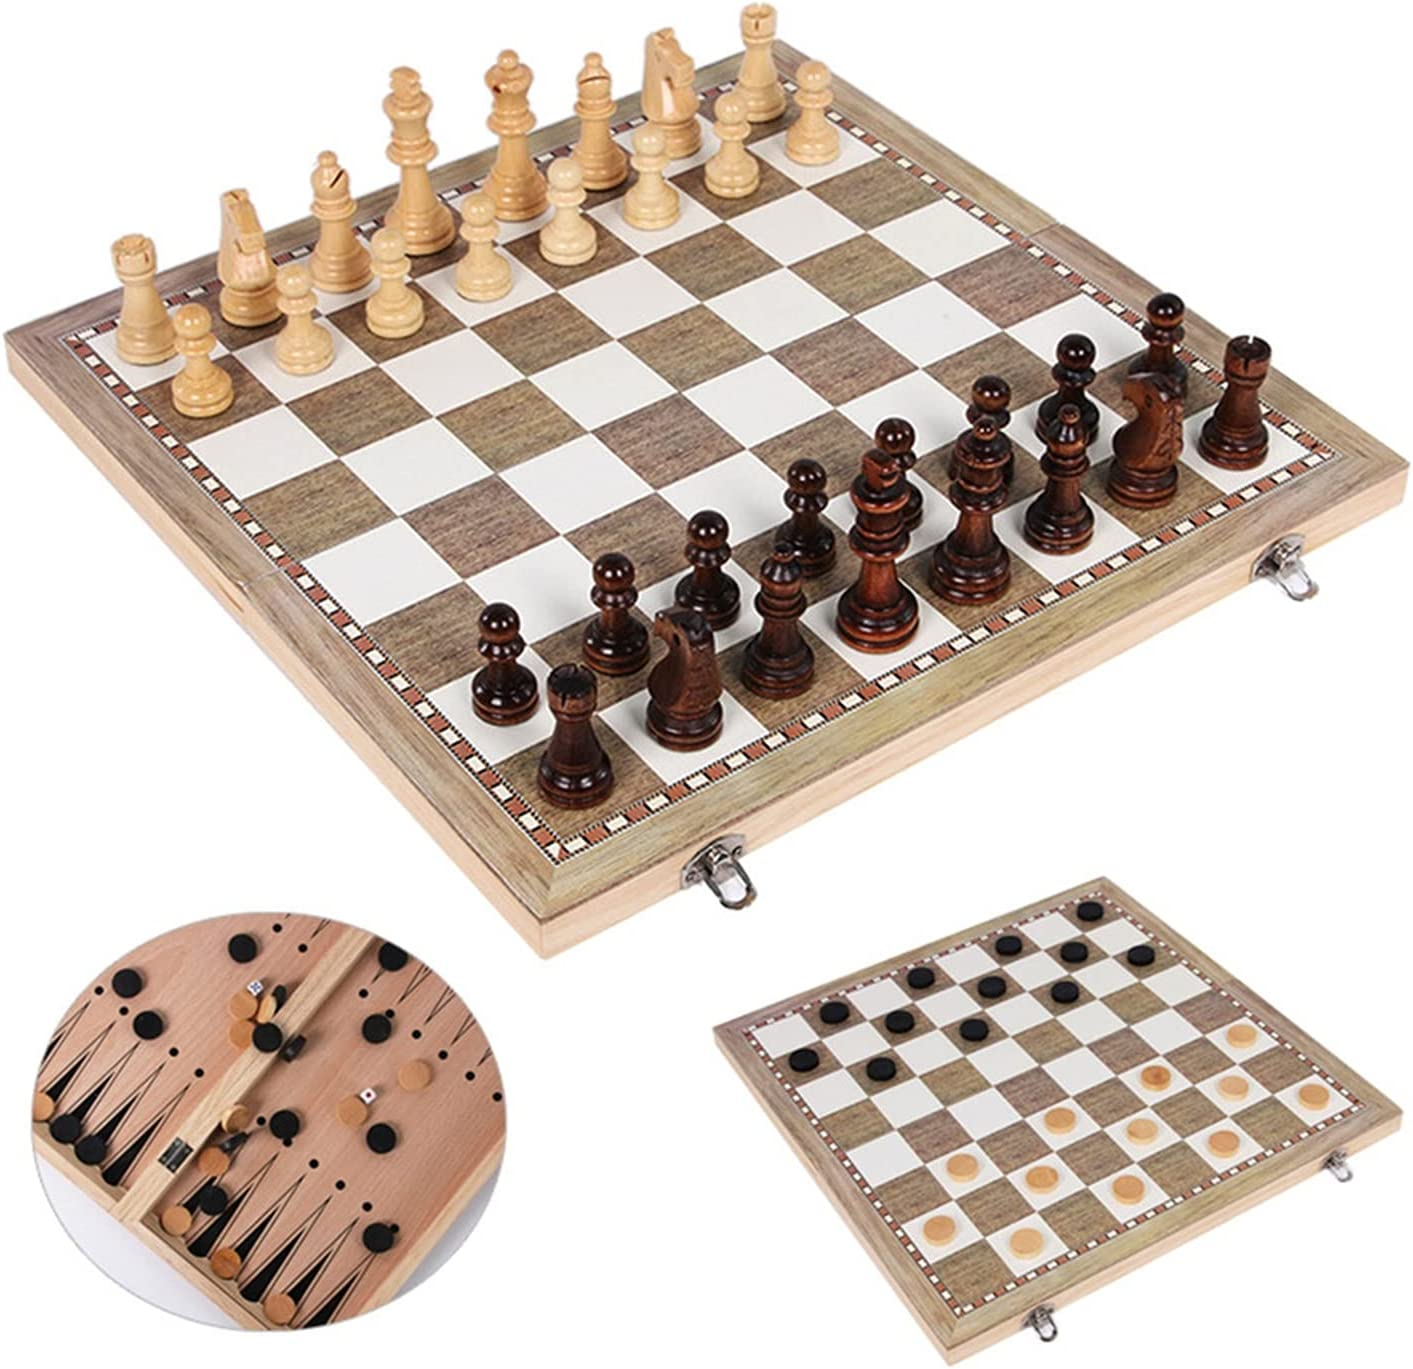 Wooden Backgammon Checkers New life Chess Set 3 1 in C Time sale Travel Game